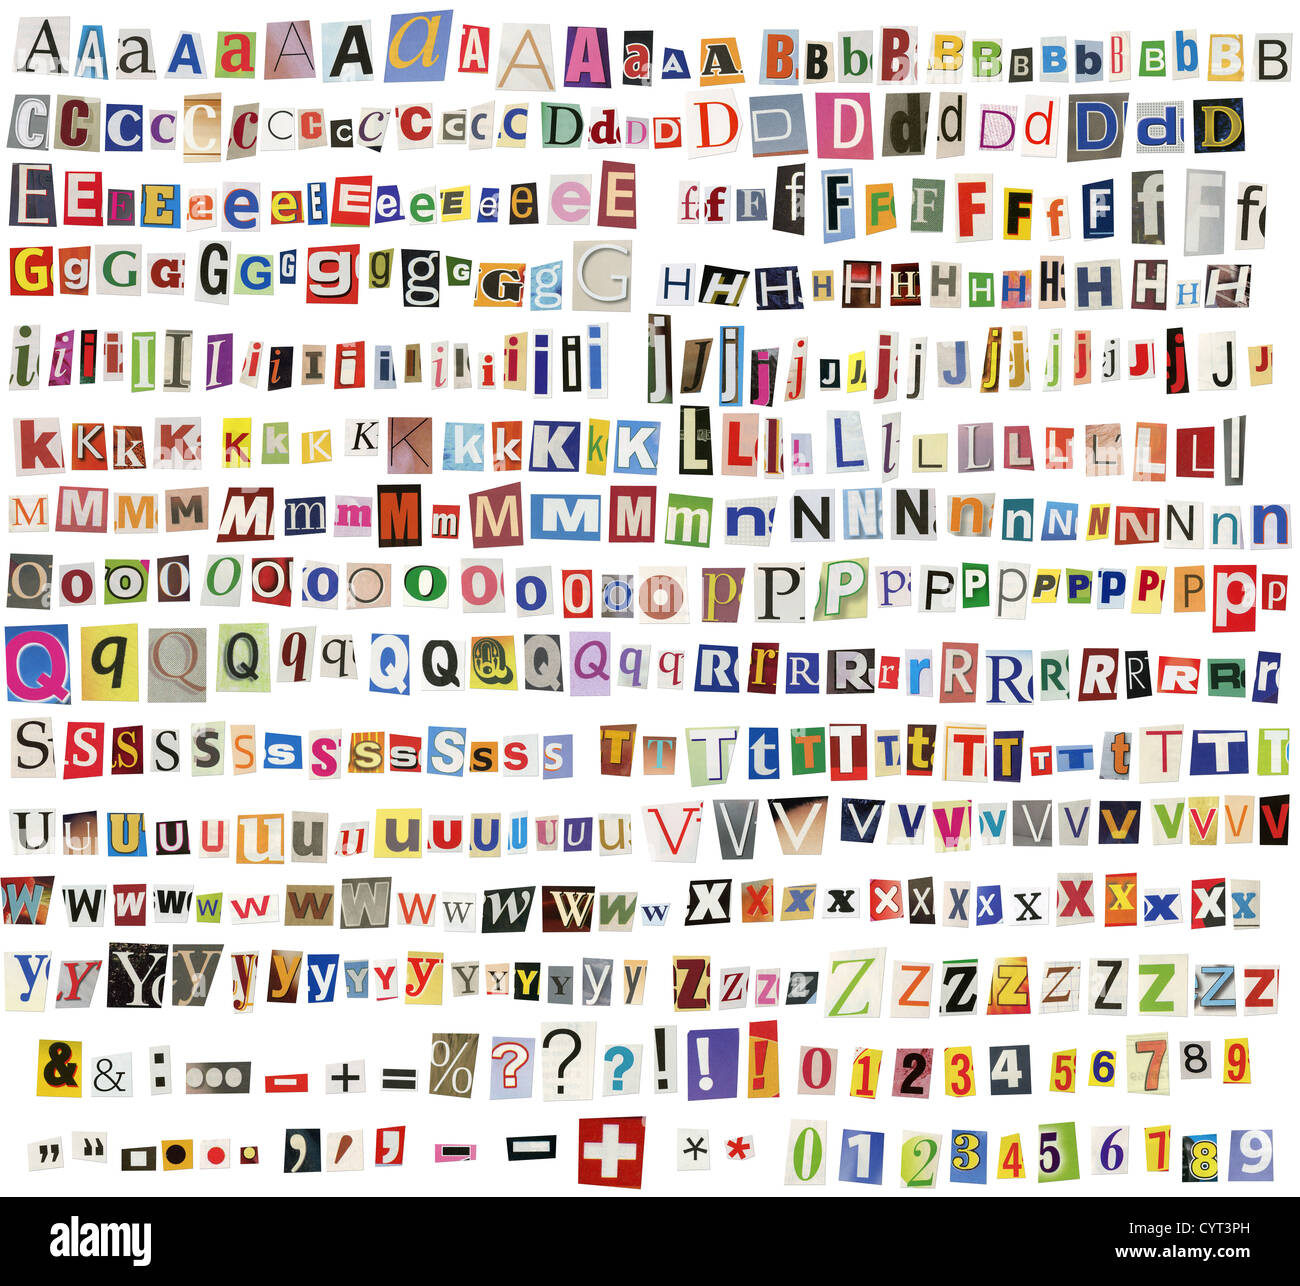 Newspaper Magazine Alphabet With Letters Numbers And Symbols Stock